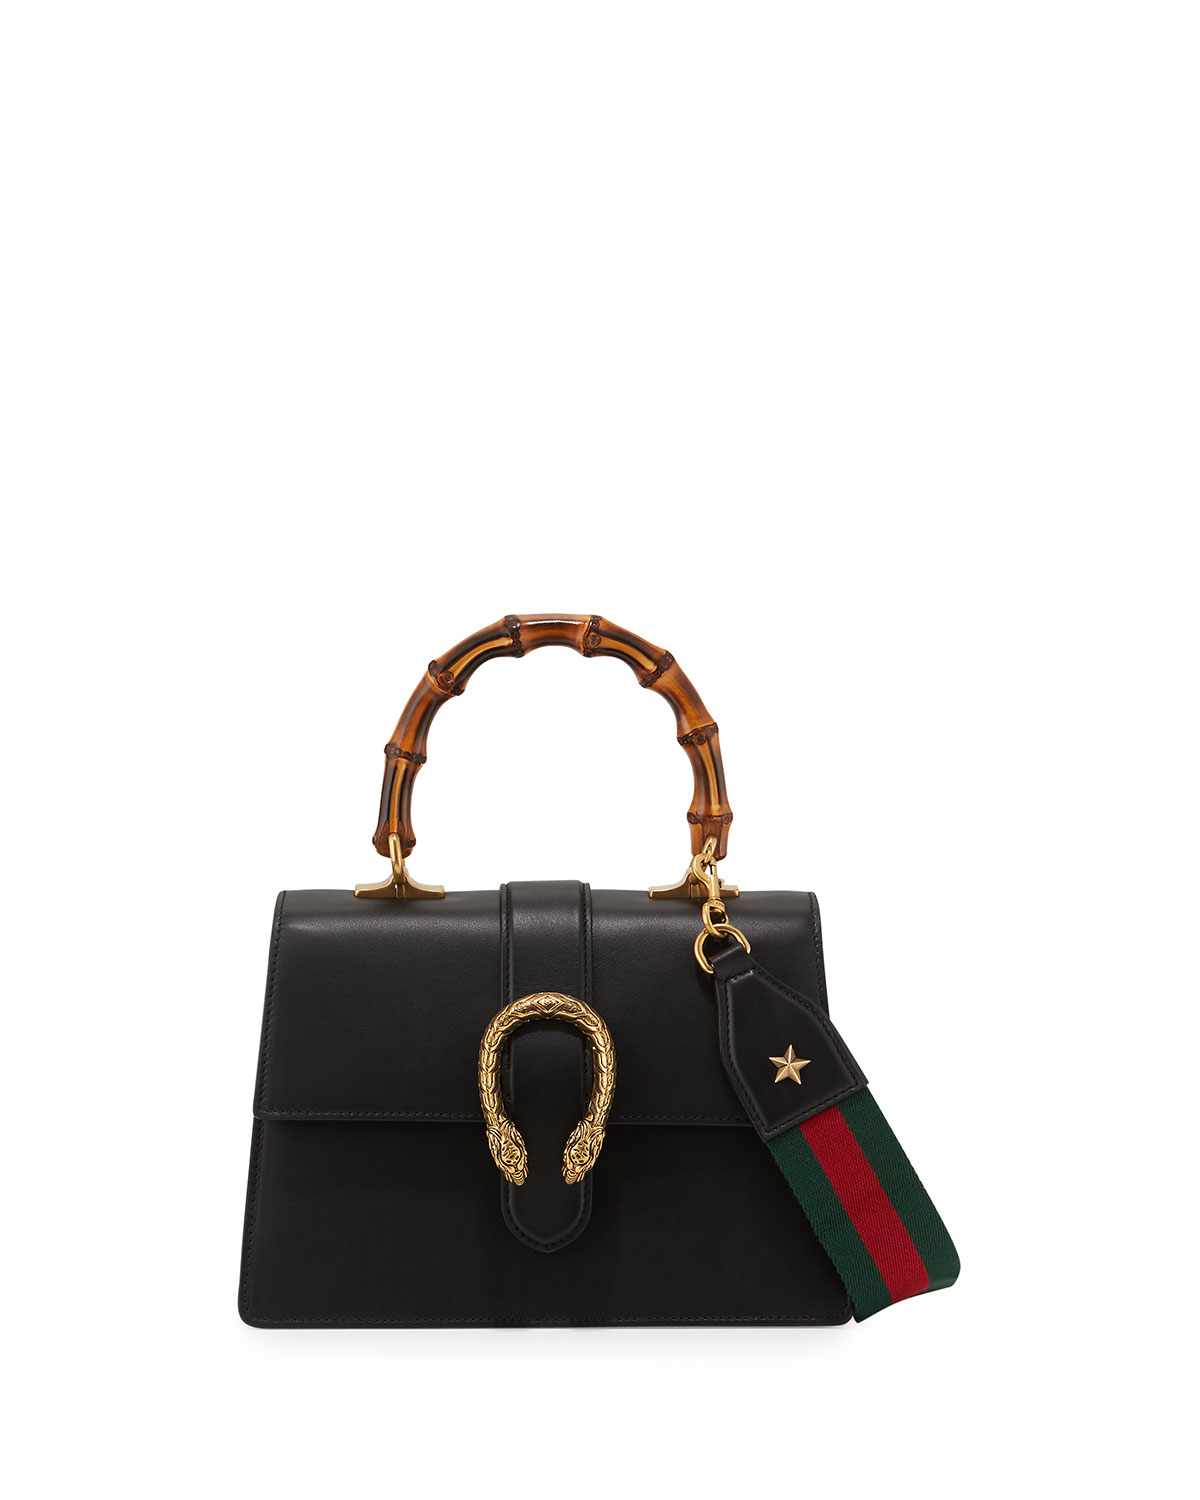 c7ae558da6b Gucci Dionysus Small Top-Handle Satchel Bag